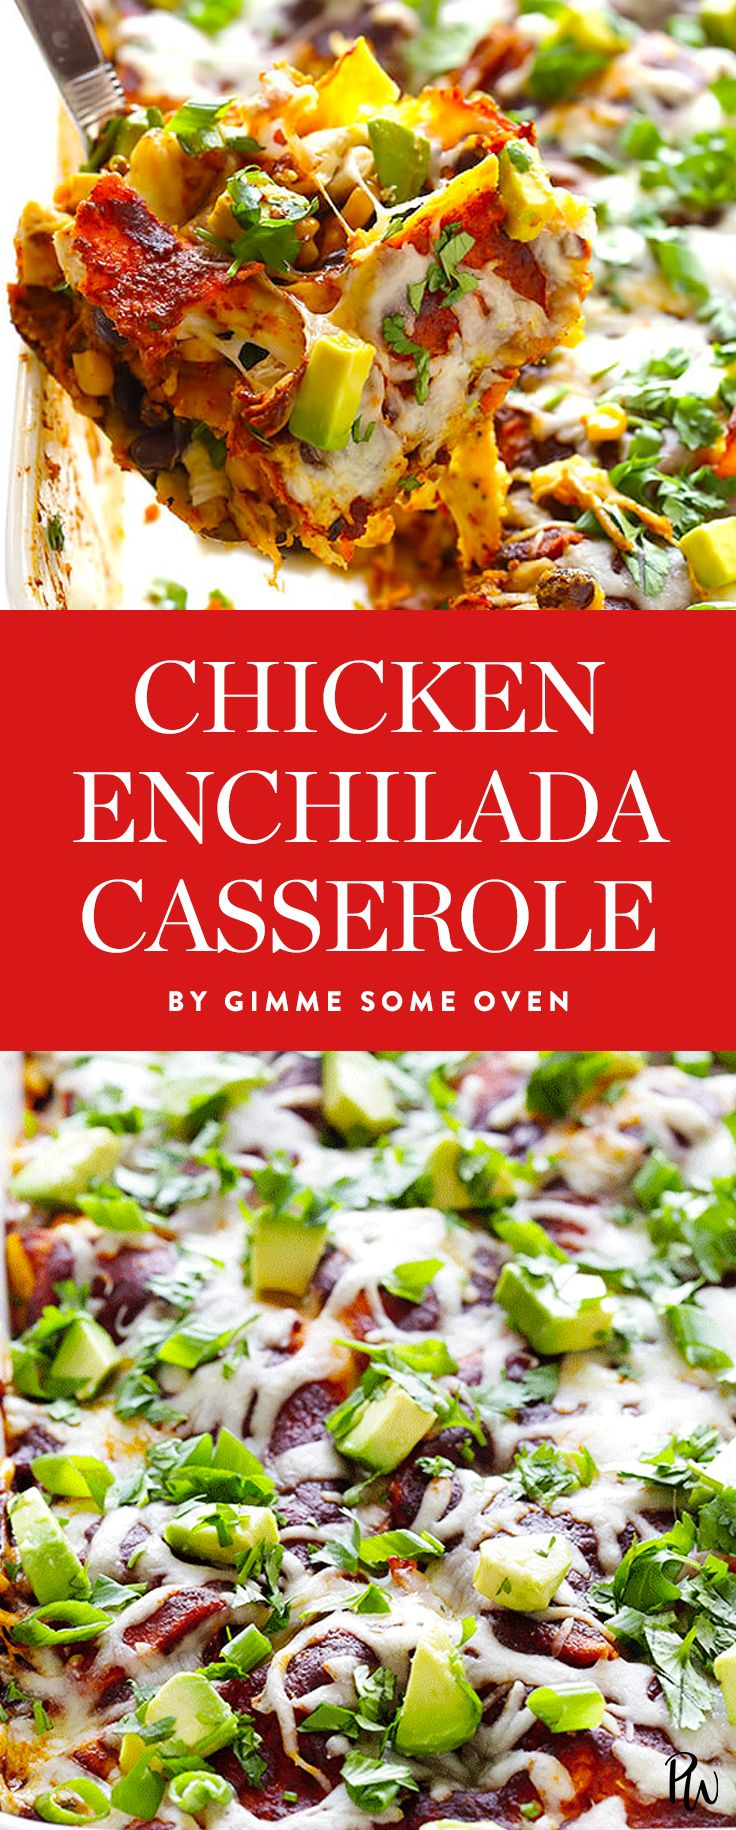 Get the recipe for this delicious, gluten-free chicken enchilada casserole and more easy Christmas dinners that basically cook themselves. #christmasdinners #chickenenchilada #chickenrecipes #holidayrecipes #casserolerecipe #christmasrecipes